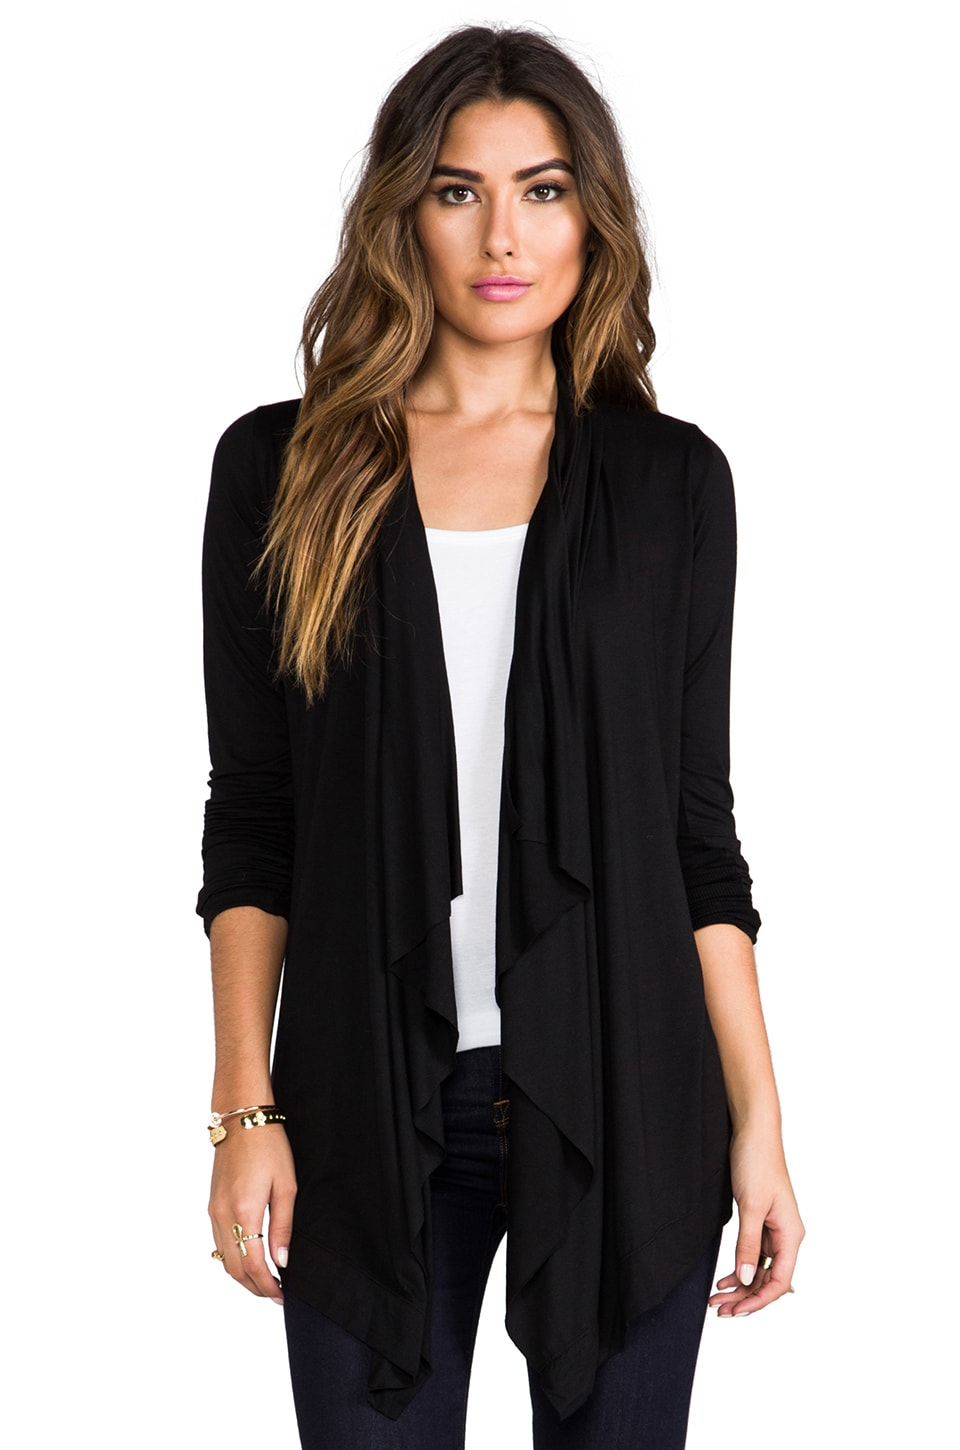 Feel the Piece Blake Sweater Wrap in Black